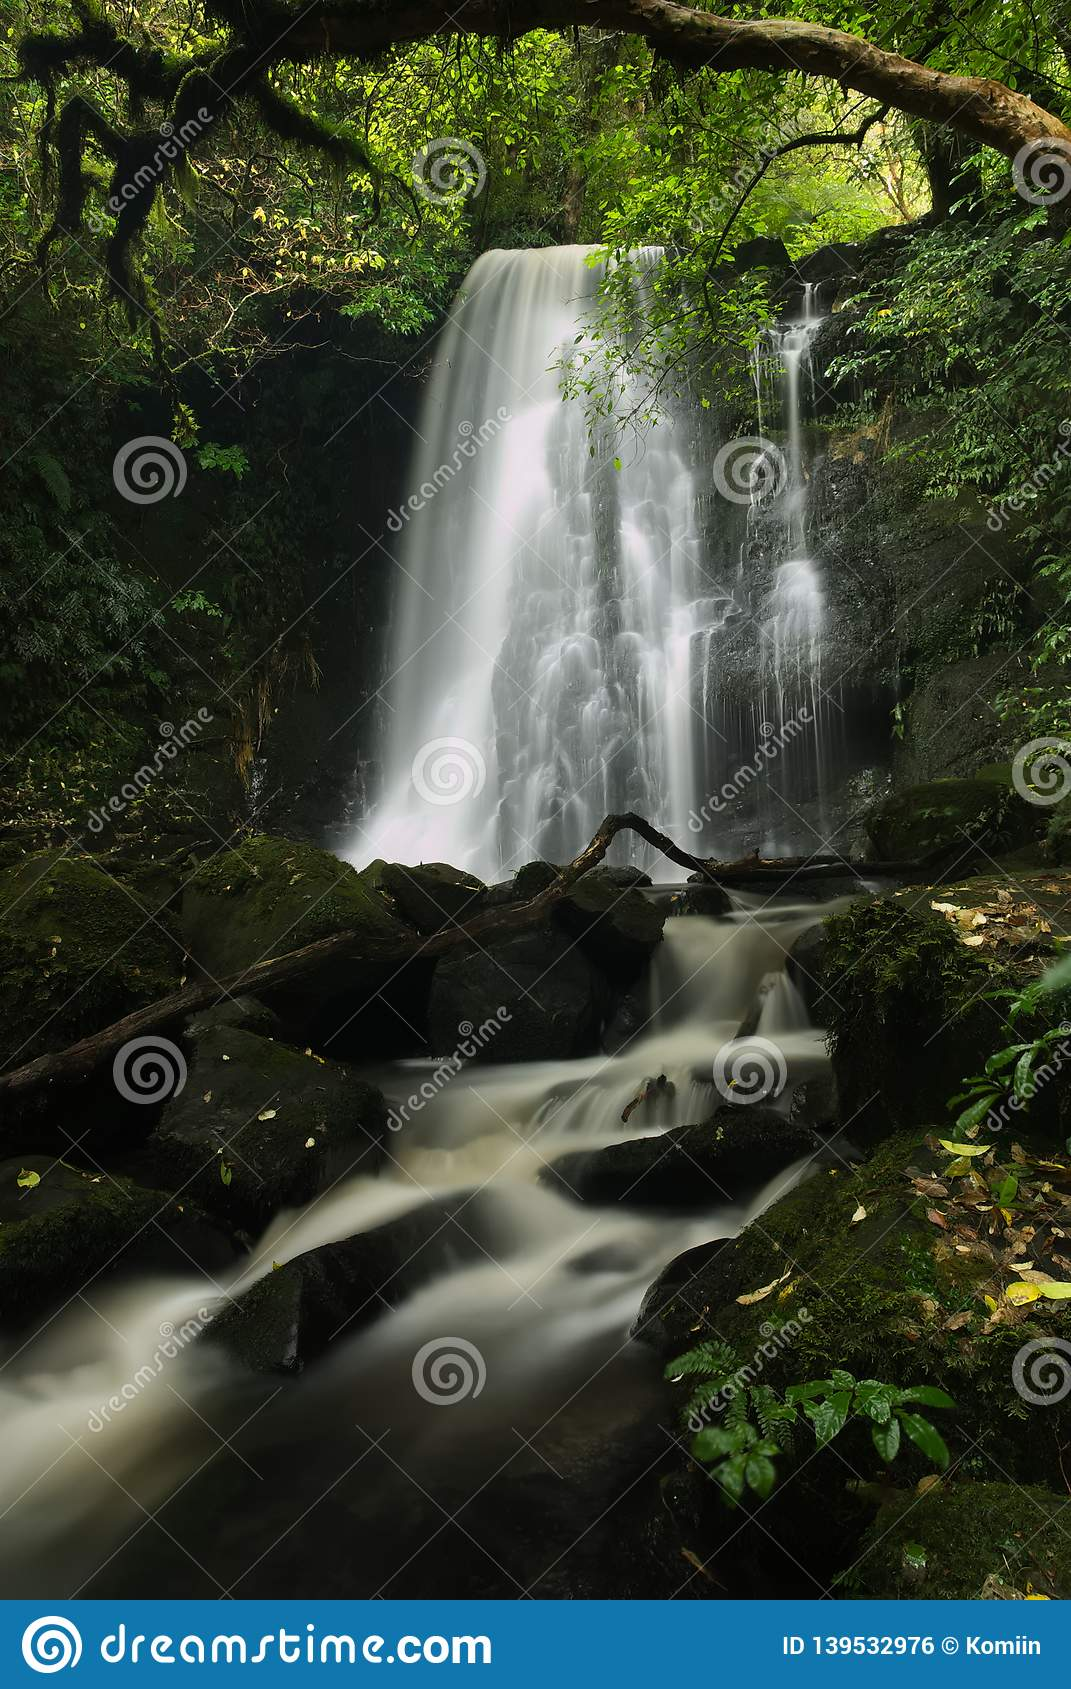 Mataiwaterval in Catlins